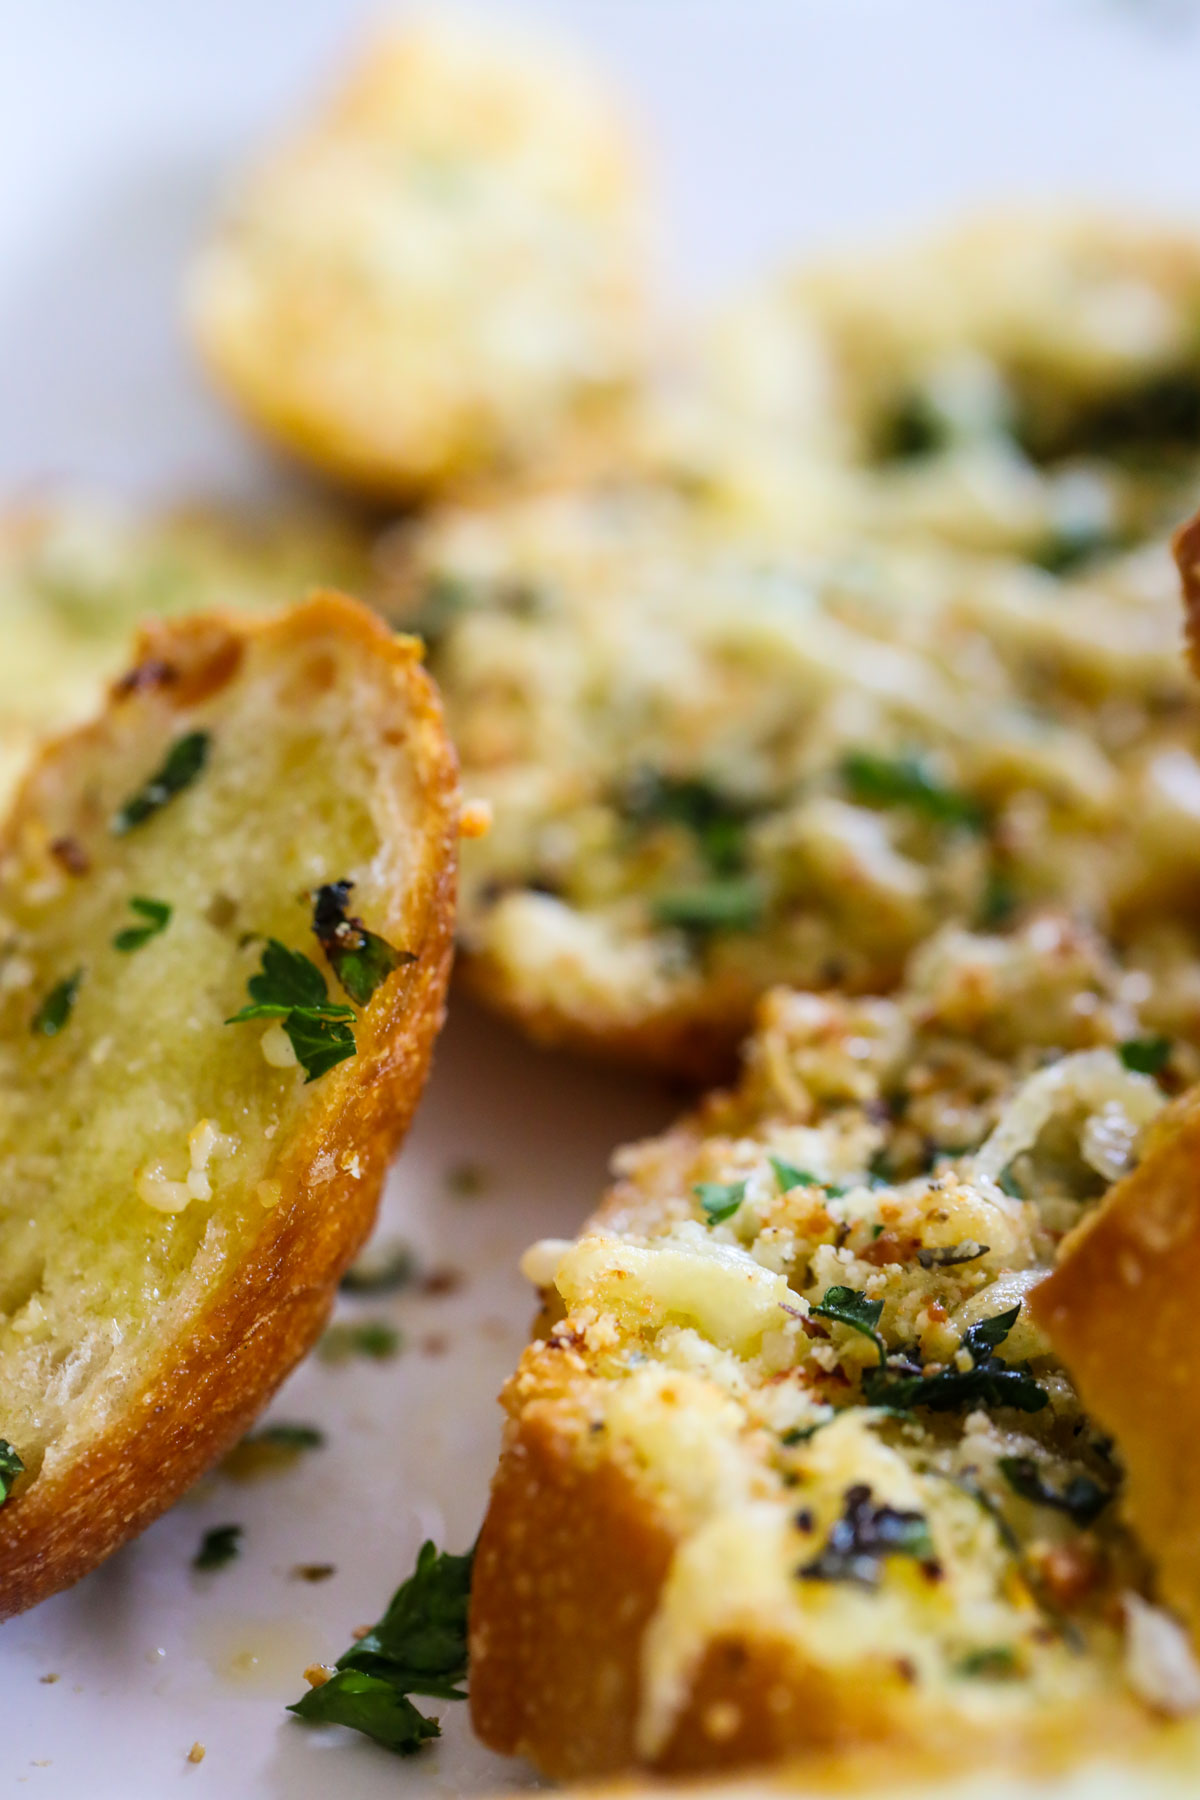 piece of garlic bread with seasonings and parsley